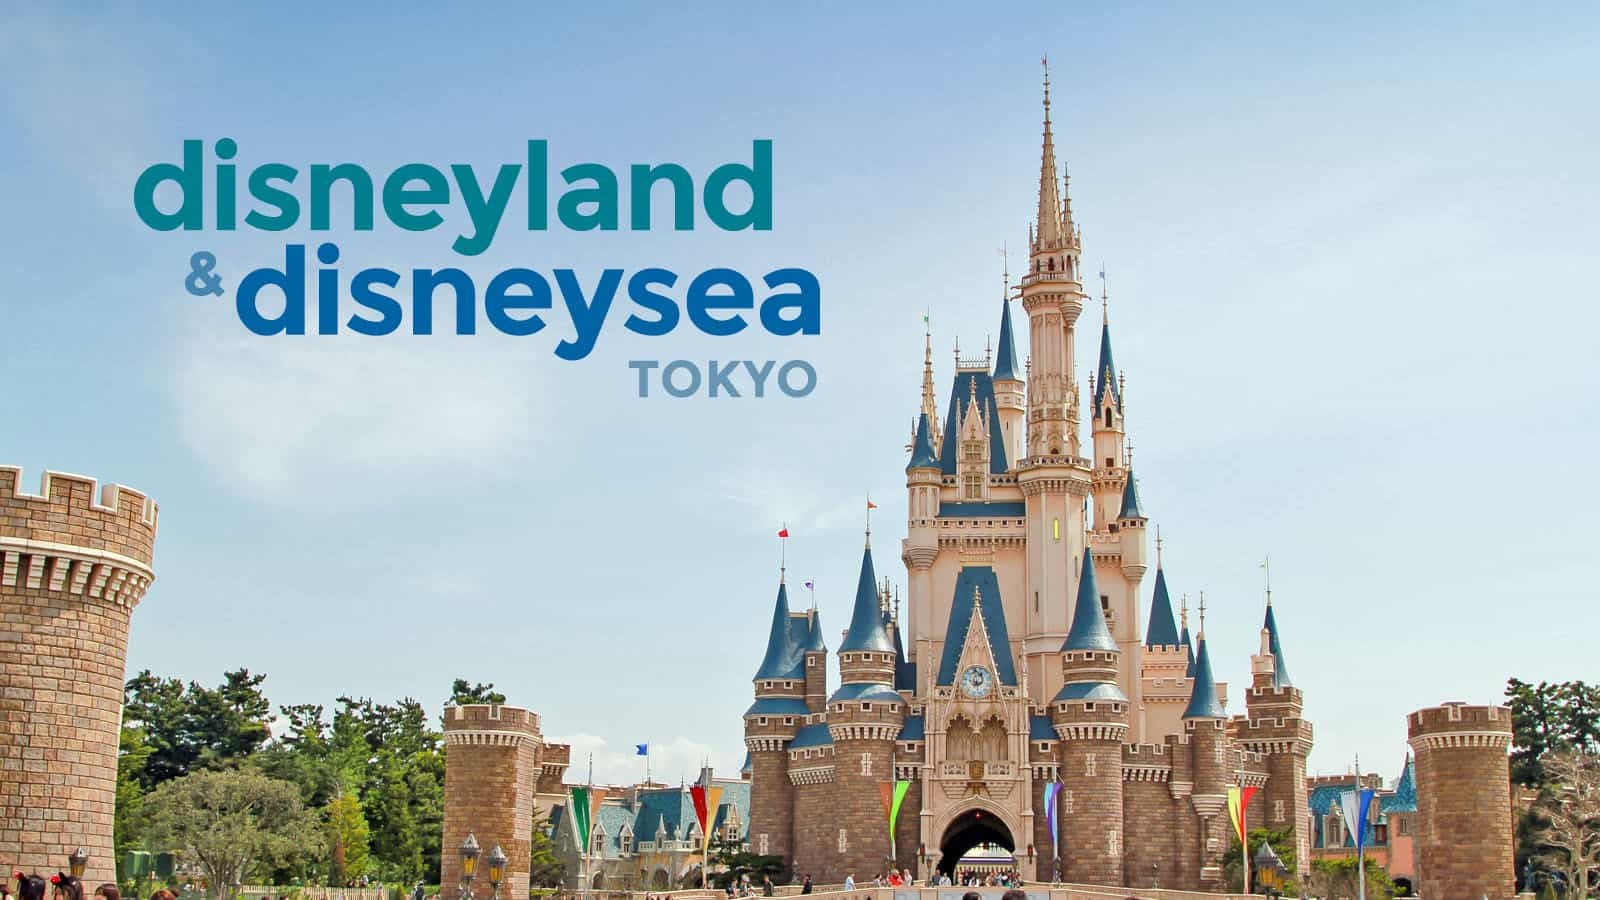 Tokyo Disneyland And Disneysea Guide For First Timers The Poor Traveler Blog